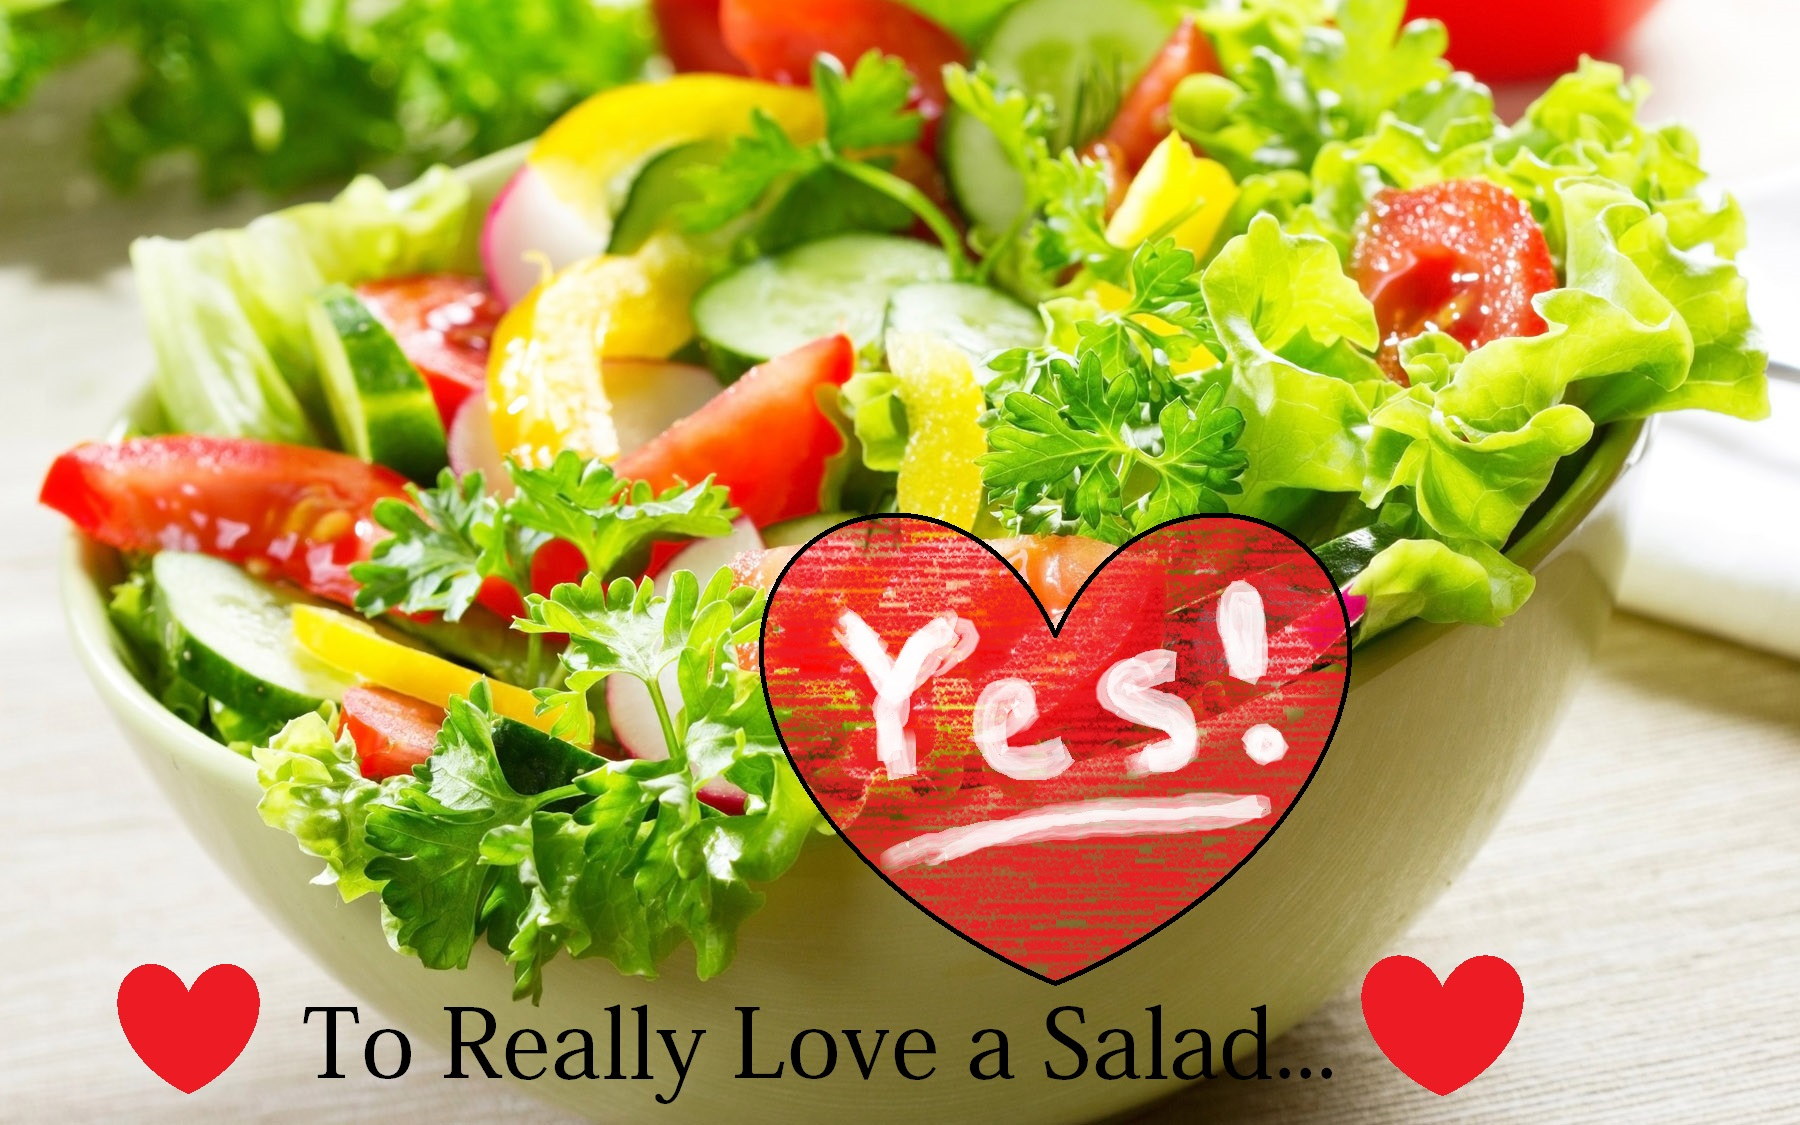 No Calorie salad dressing